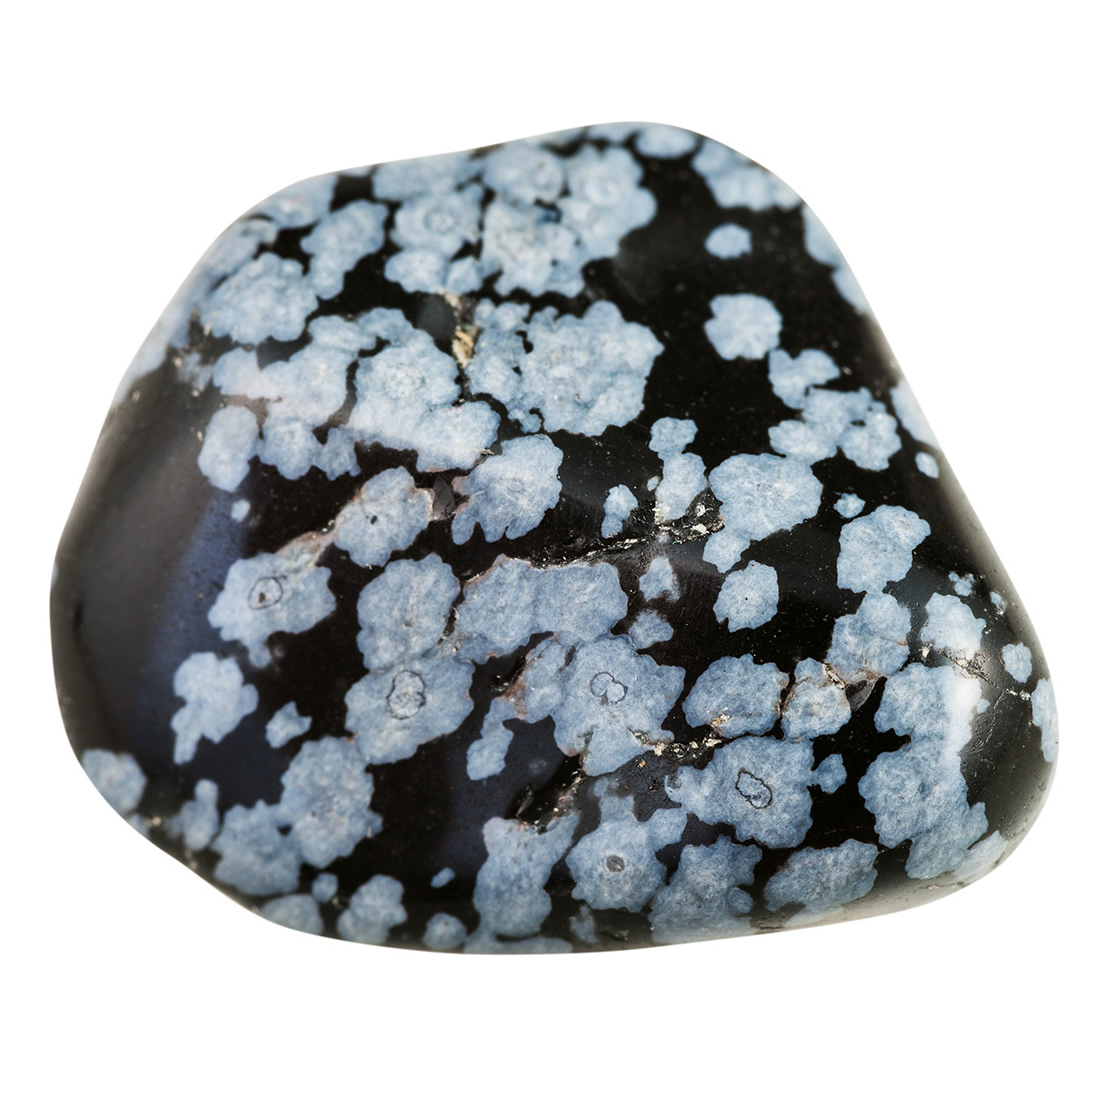 White Snowflake Obsidian : Snowflake obsidian meaning and properties beadage